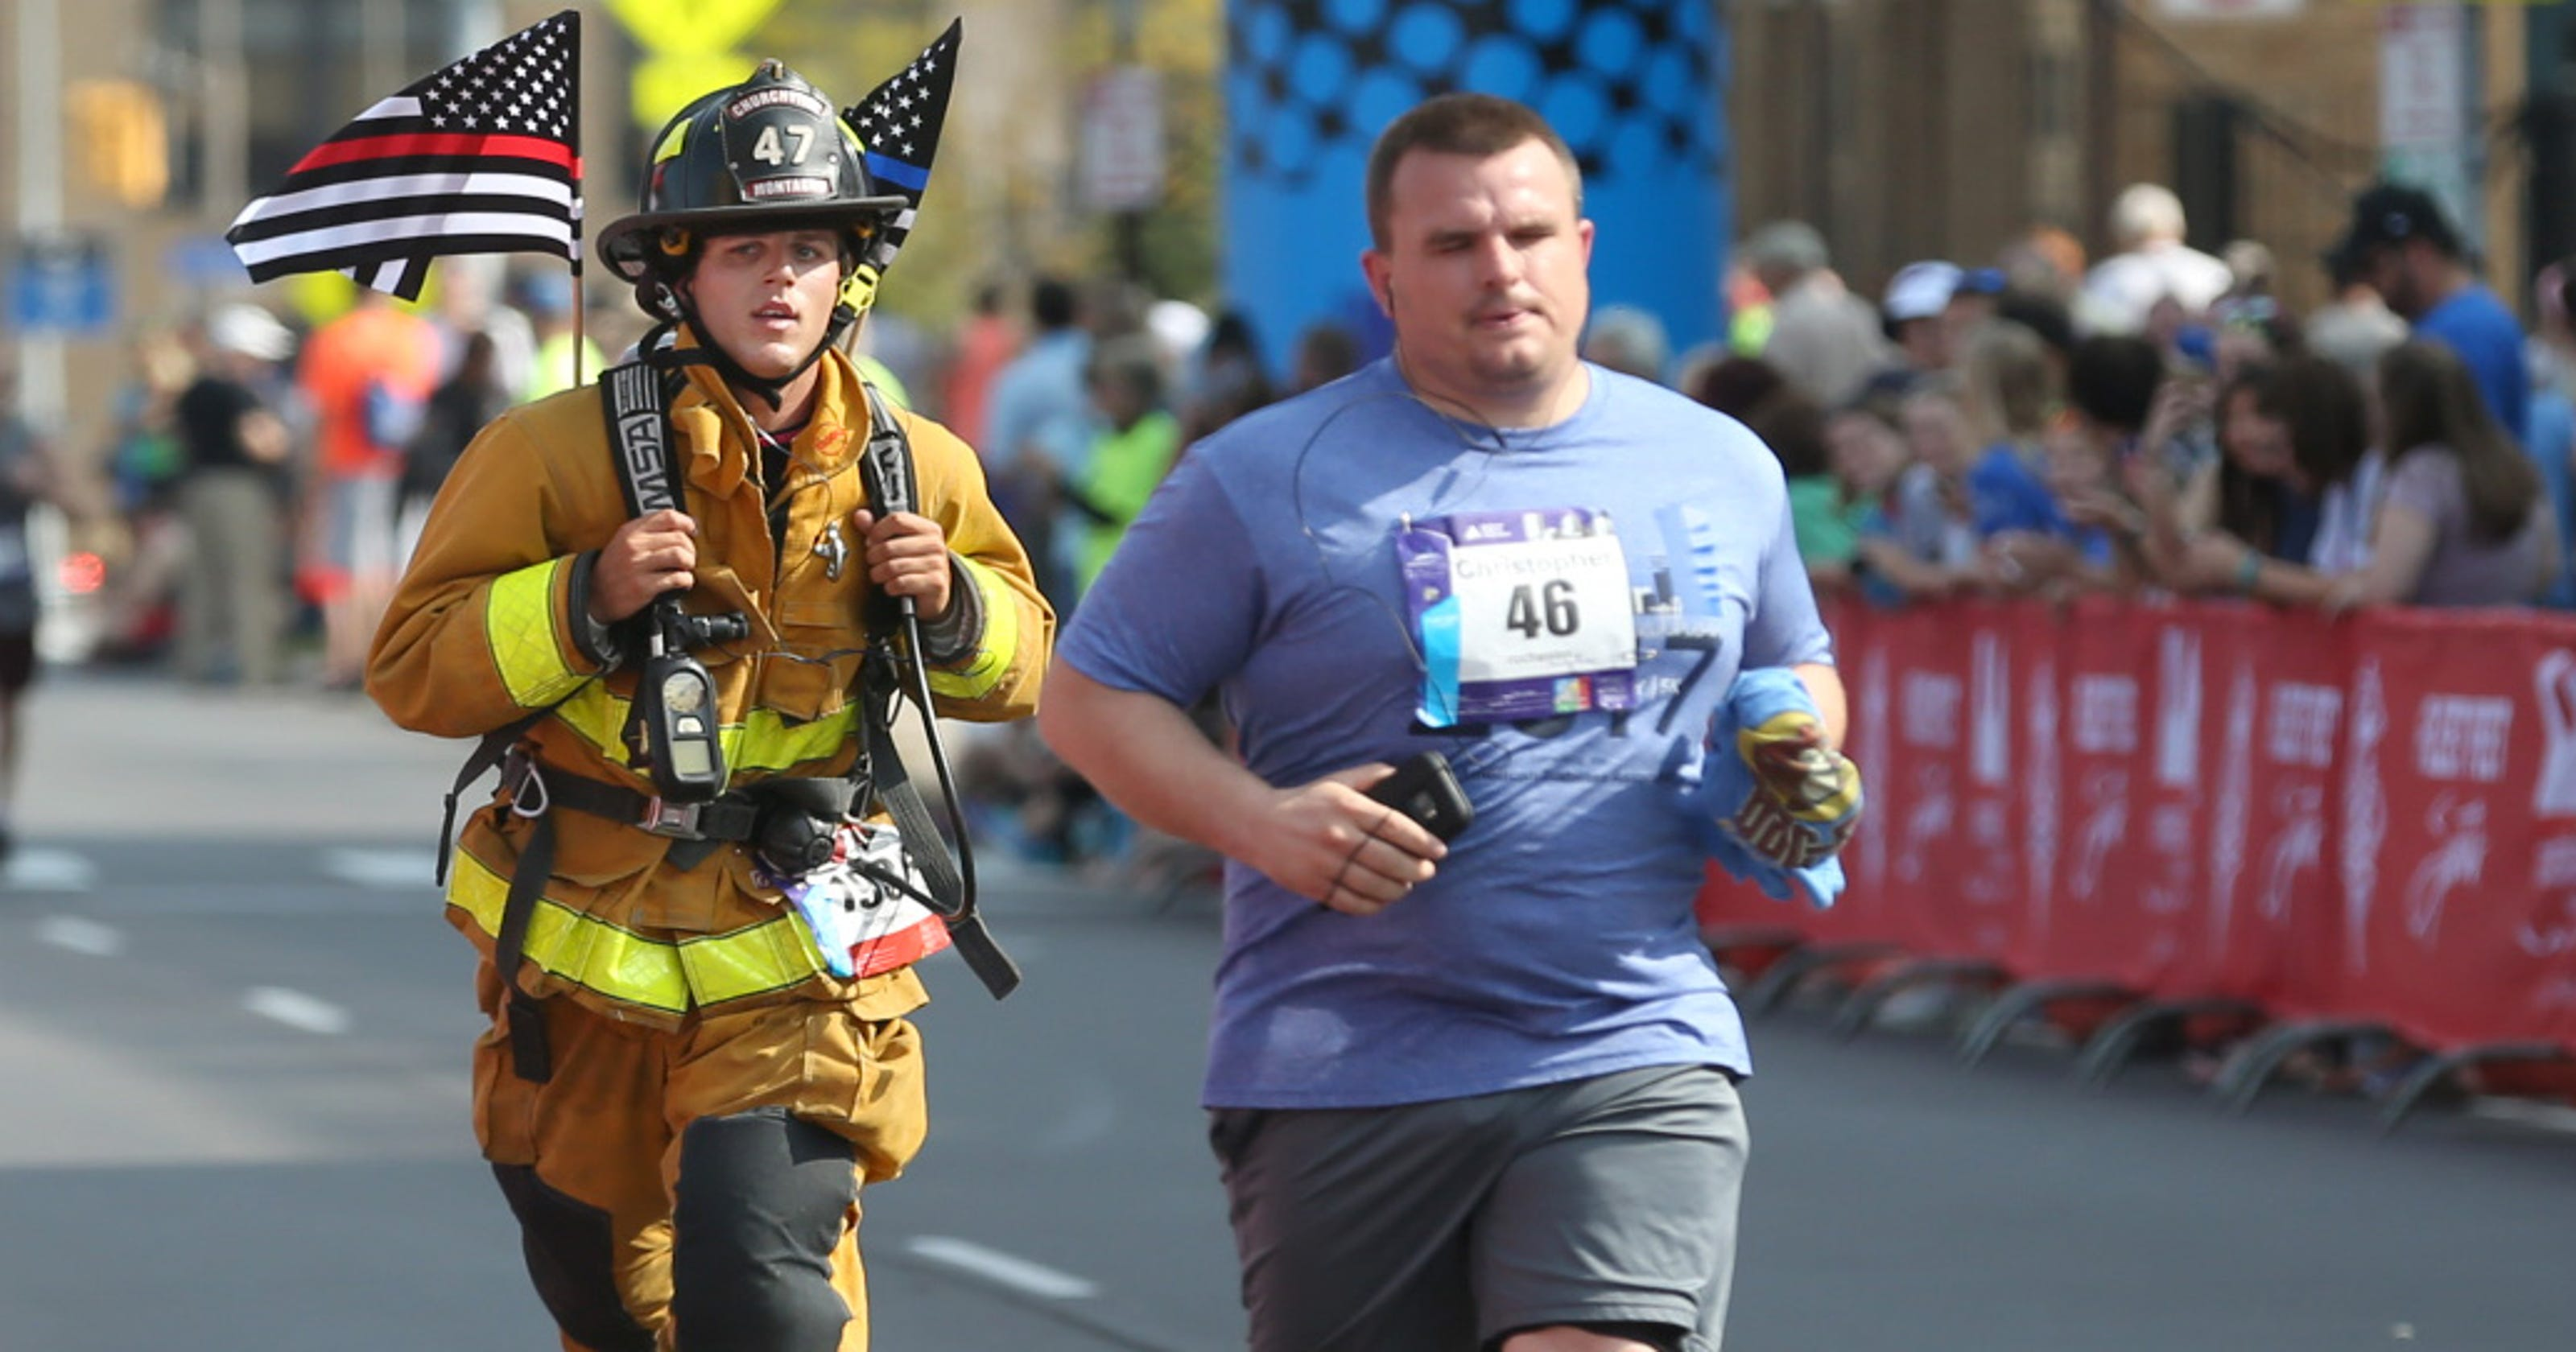 fafc9b7b3a 5K race to benefit local first responders with PTSD